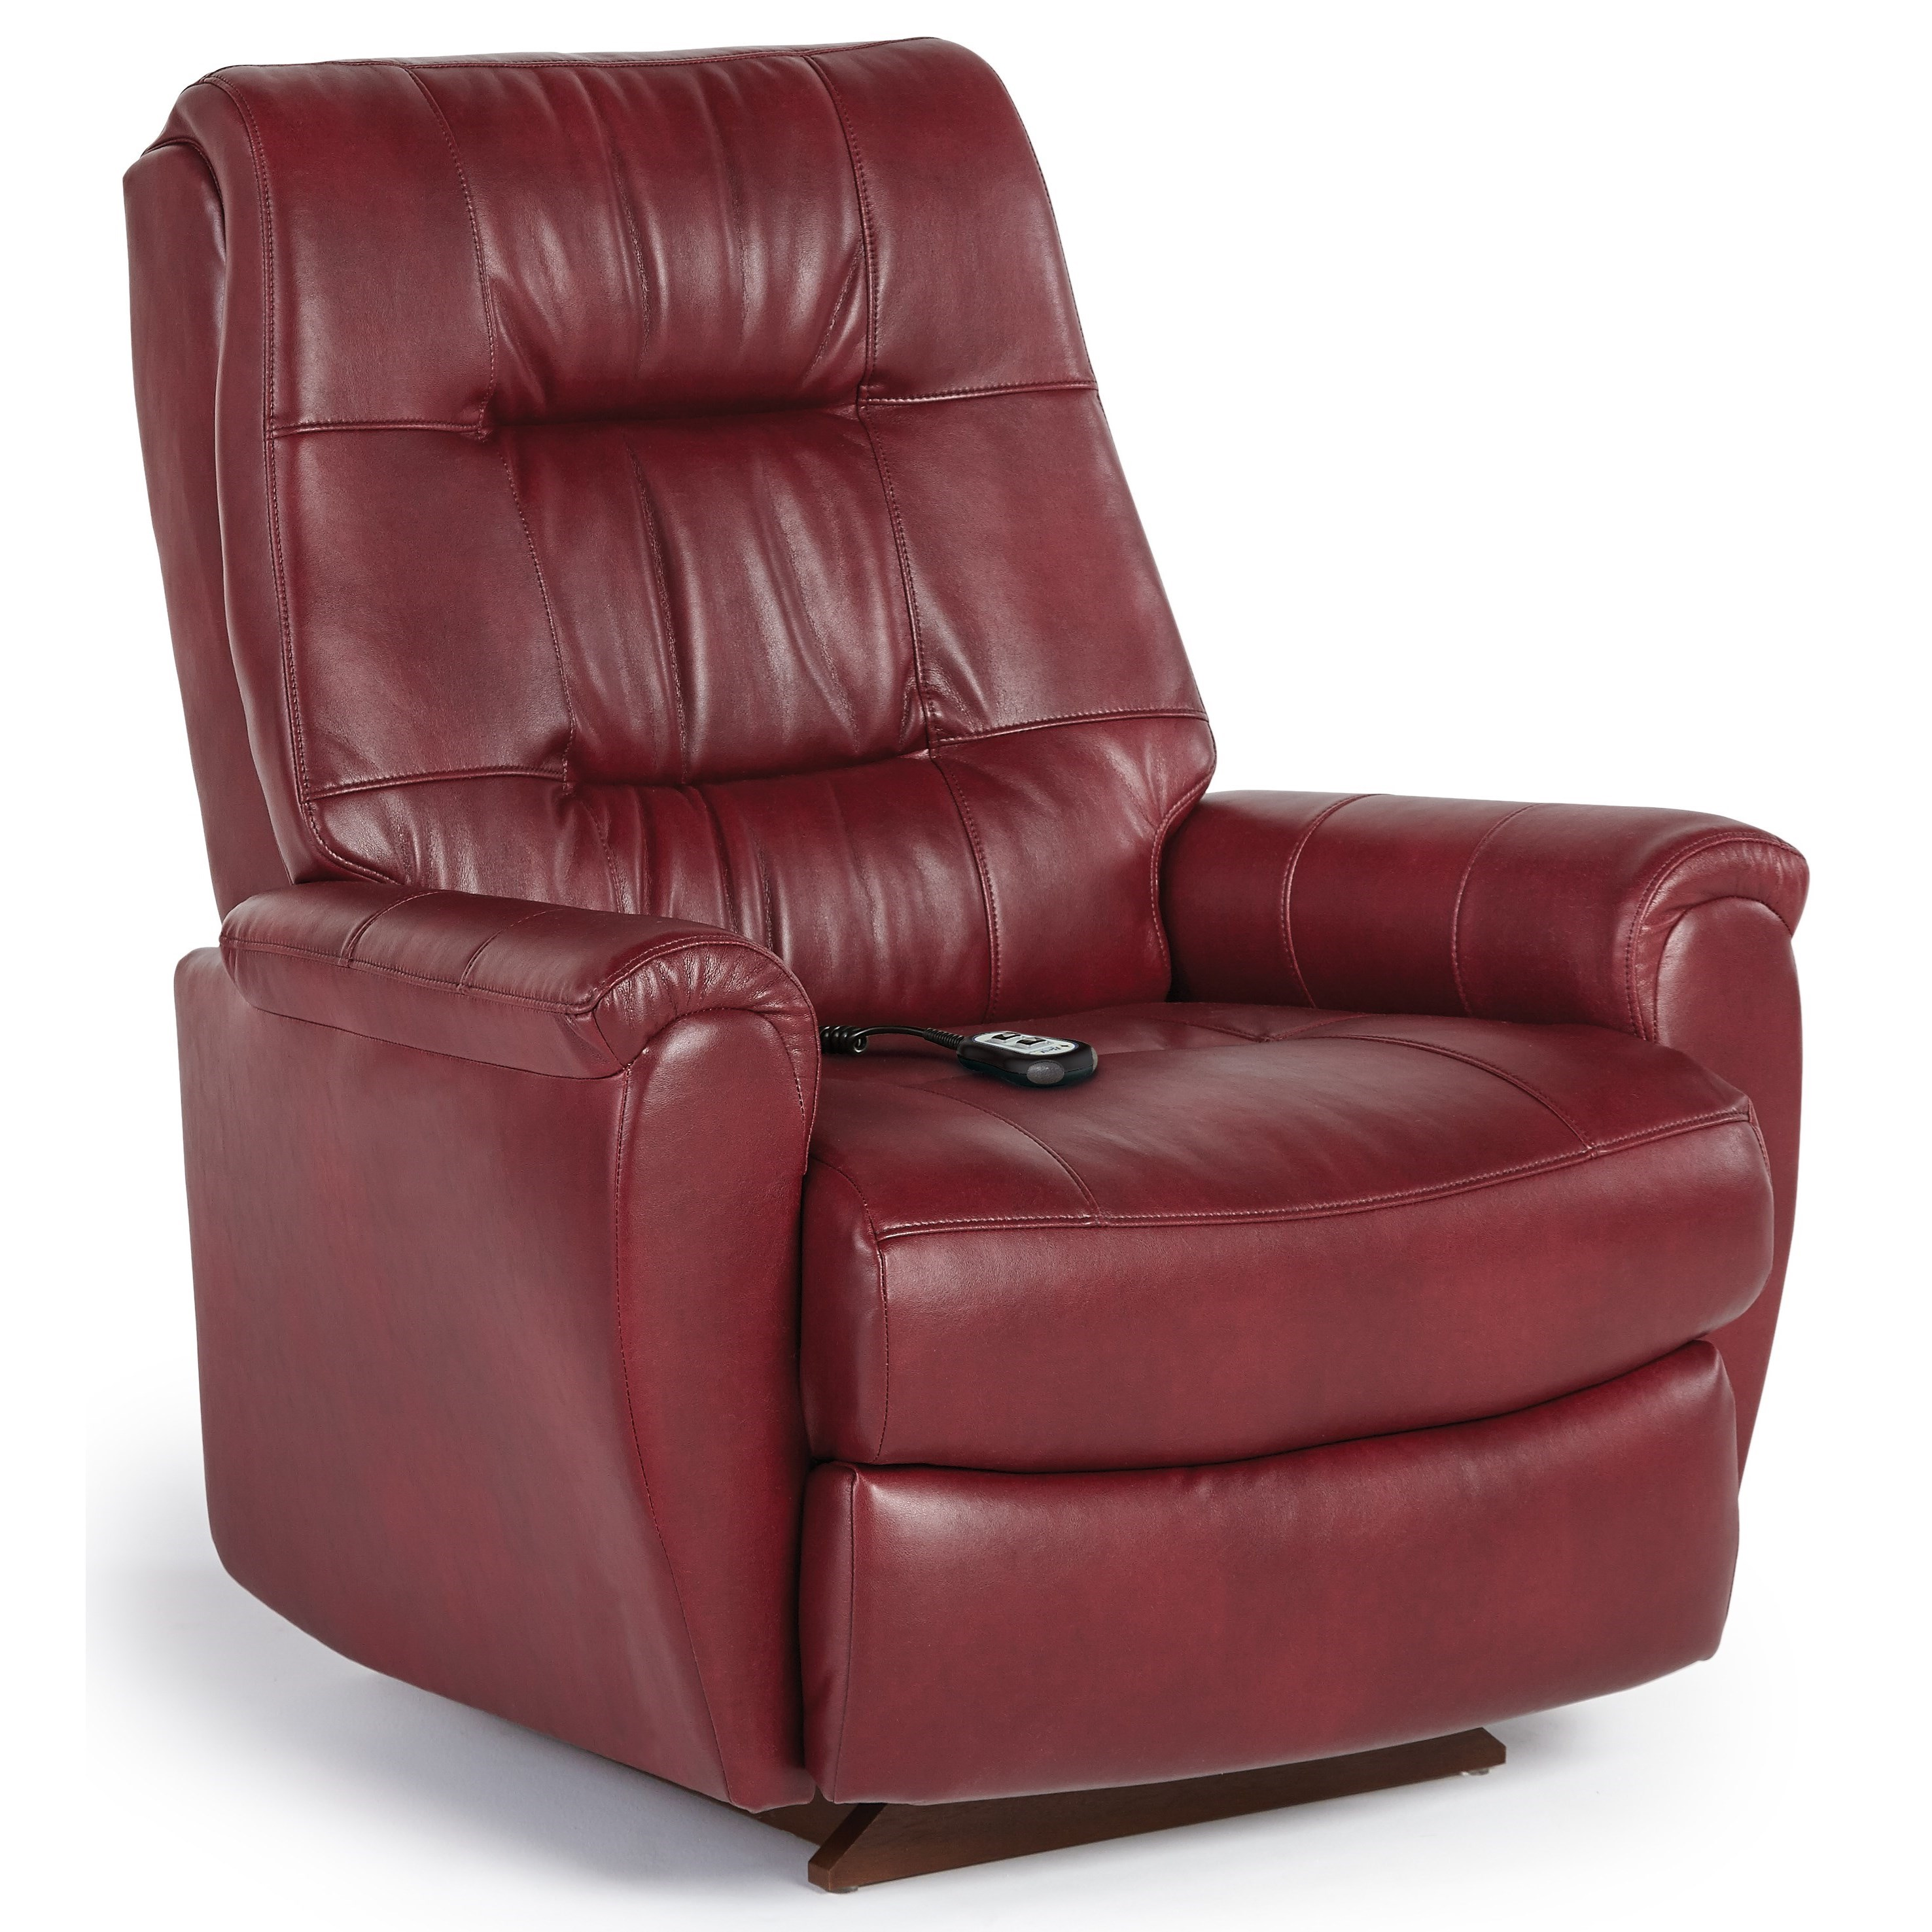 Best home furnishings recliners petite felicia power for Recliner chair